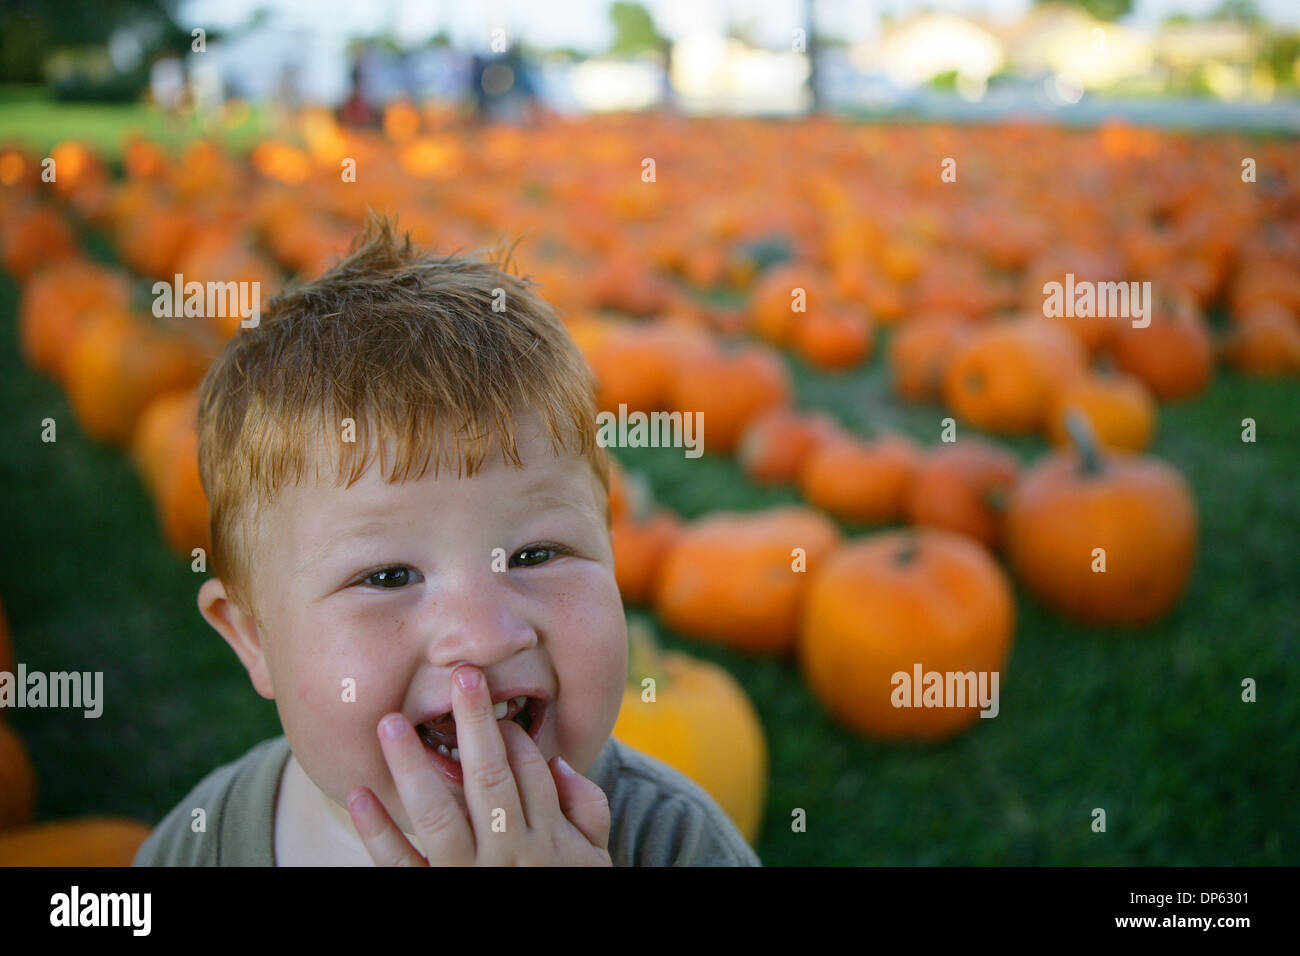 Oct 04, 2006; West Palm Beach, FL, USA; Two Year Old Joseph Holm Stands  Next To Rows Of Pumpkins At Trinity United Methodist Church In Palm Beach  Gardens ...